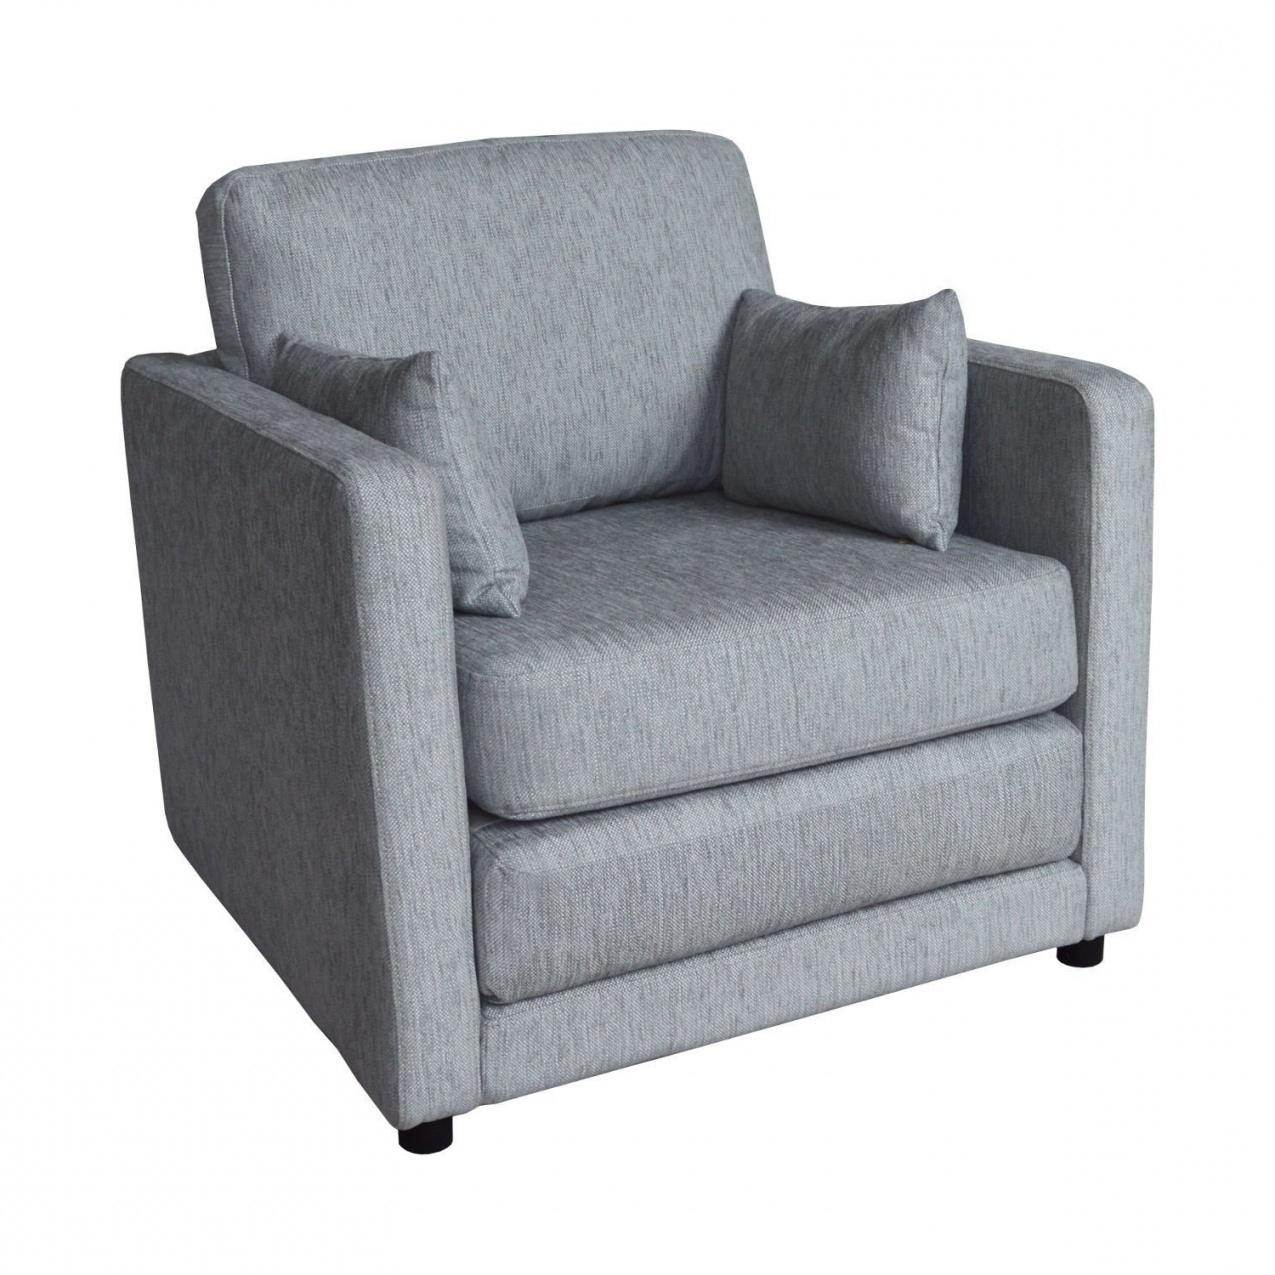 Single Chair Sofa Bed For Sale – Elite Home Within Single Chair Sofa Bed (View 5 of 20)